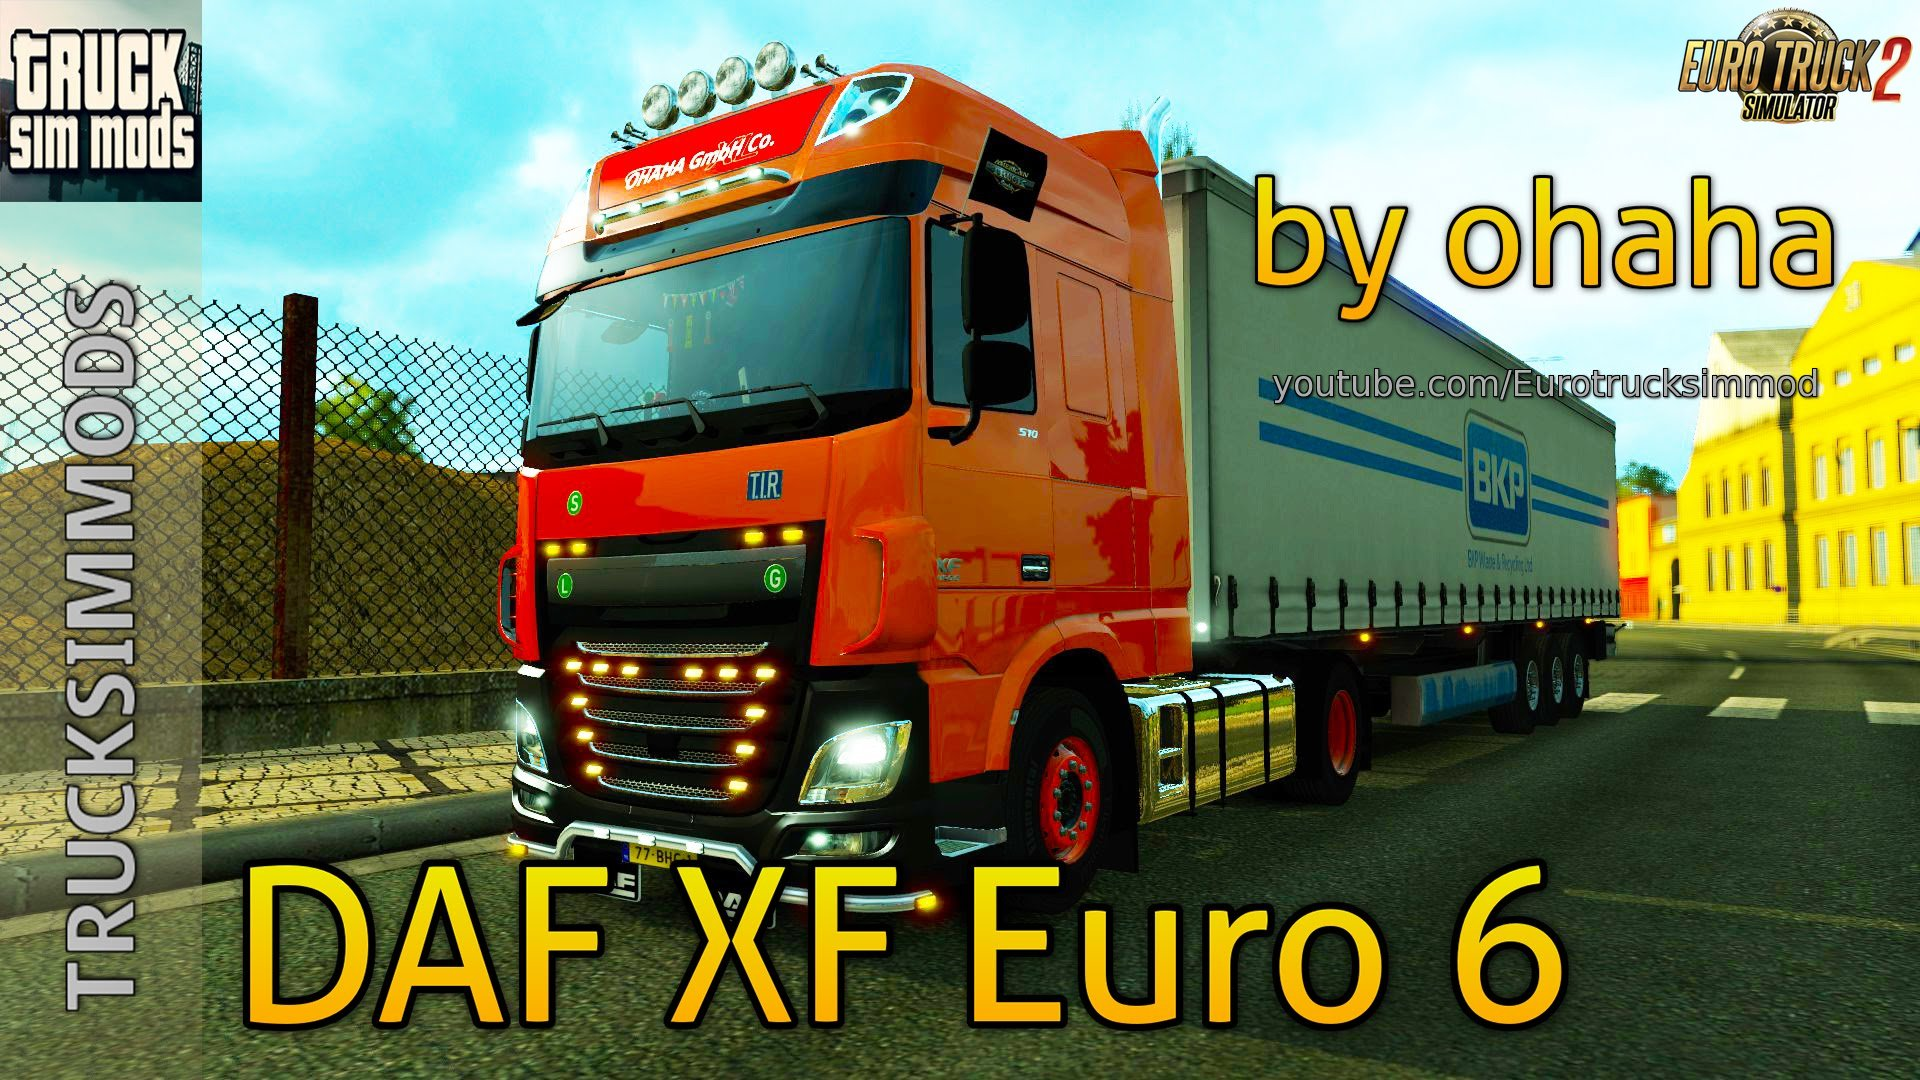 DAF XF Euro6 by ohaha v1.67 for v1.25